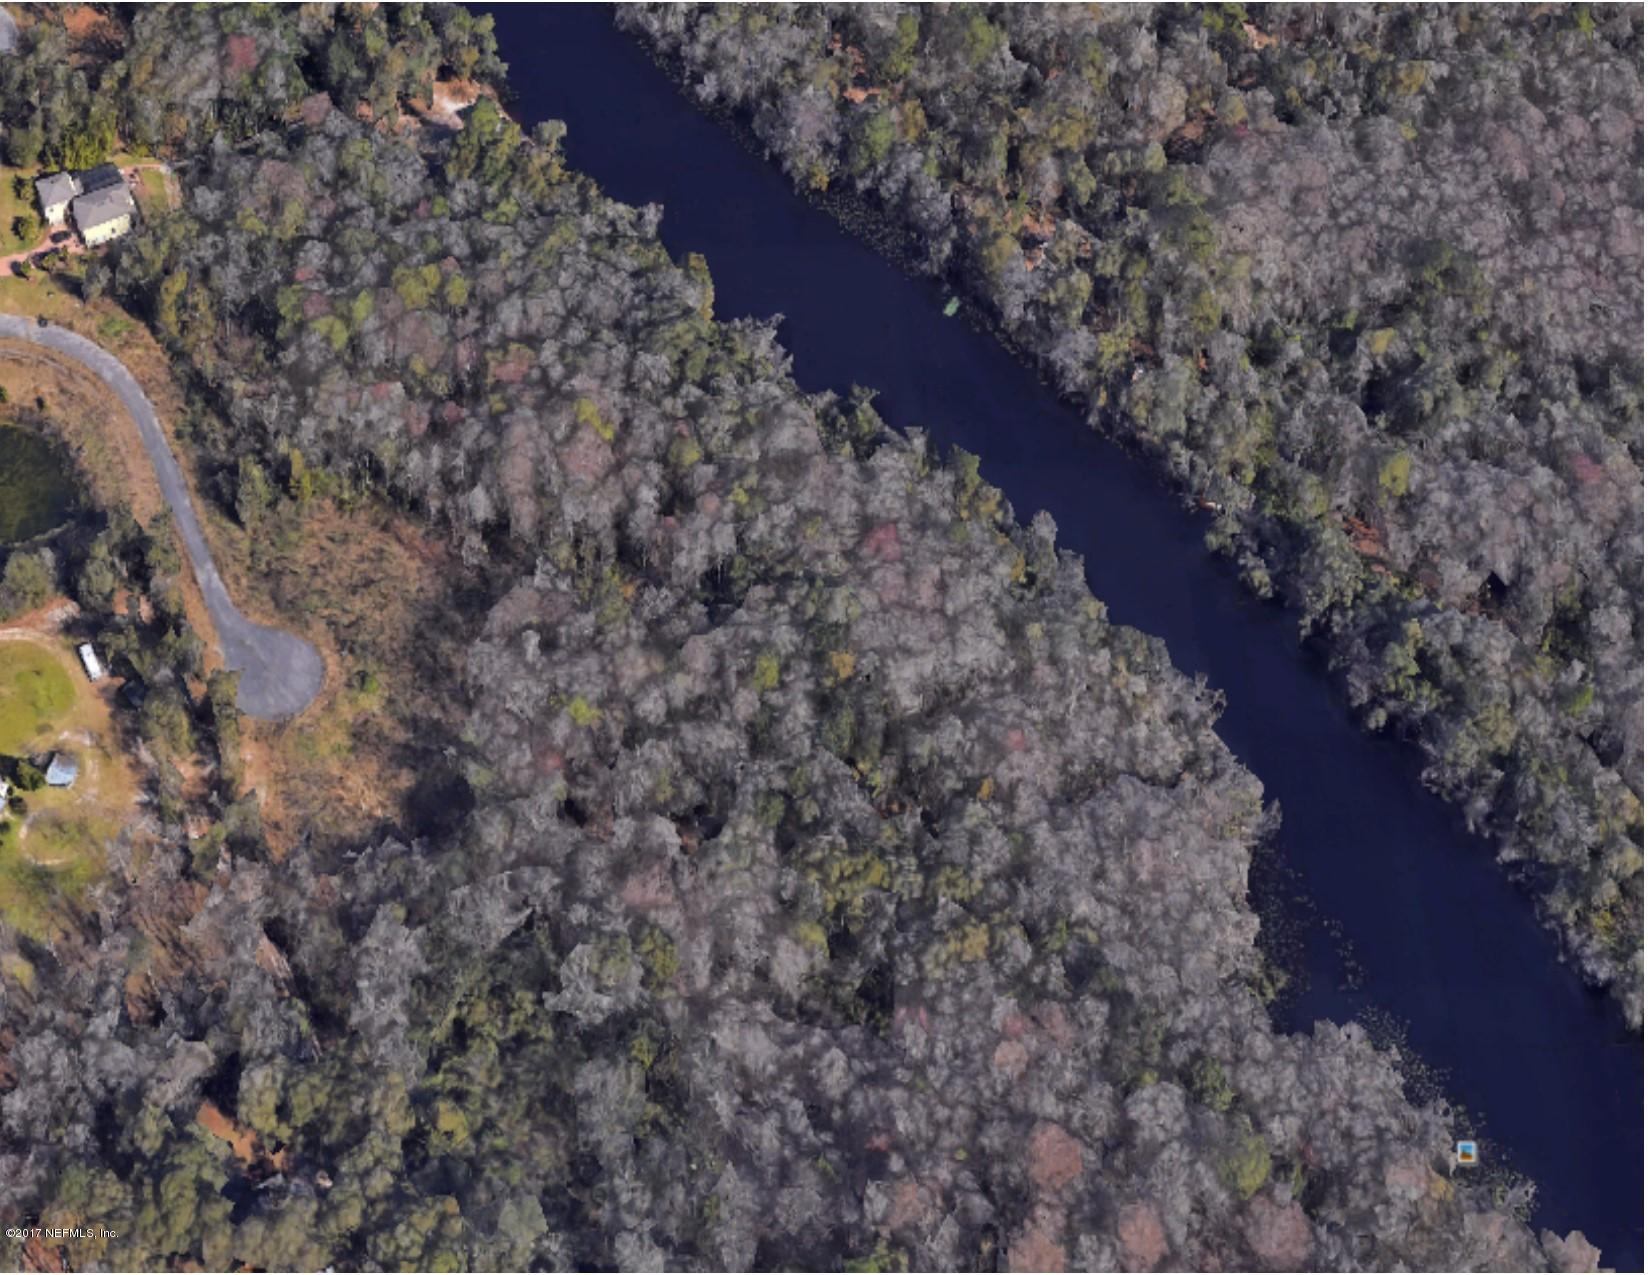 0 CHARTER POINTE, MIDDLEBURG, FLORIDA 32068, ,Vacant land,For sale,CHARTER POINTE,867249